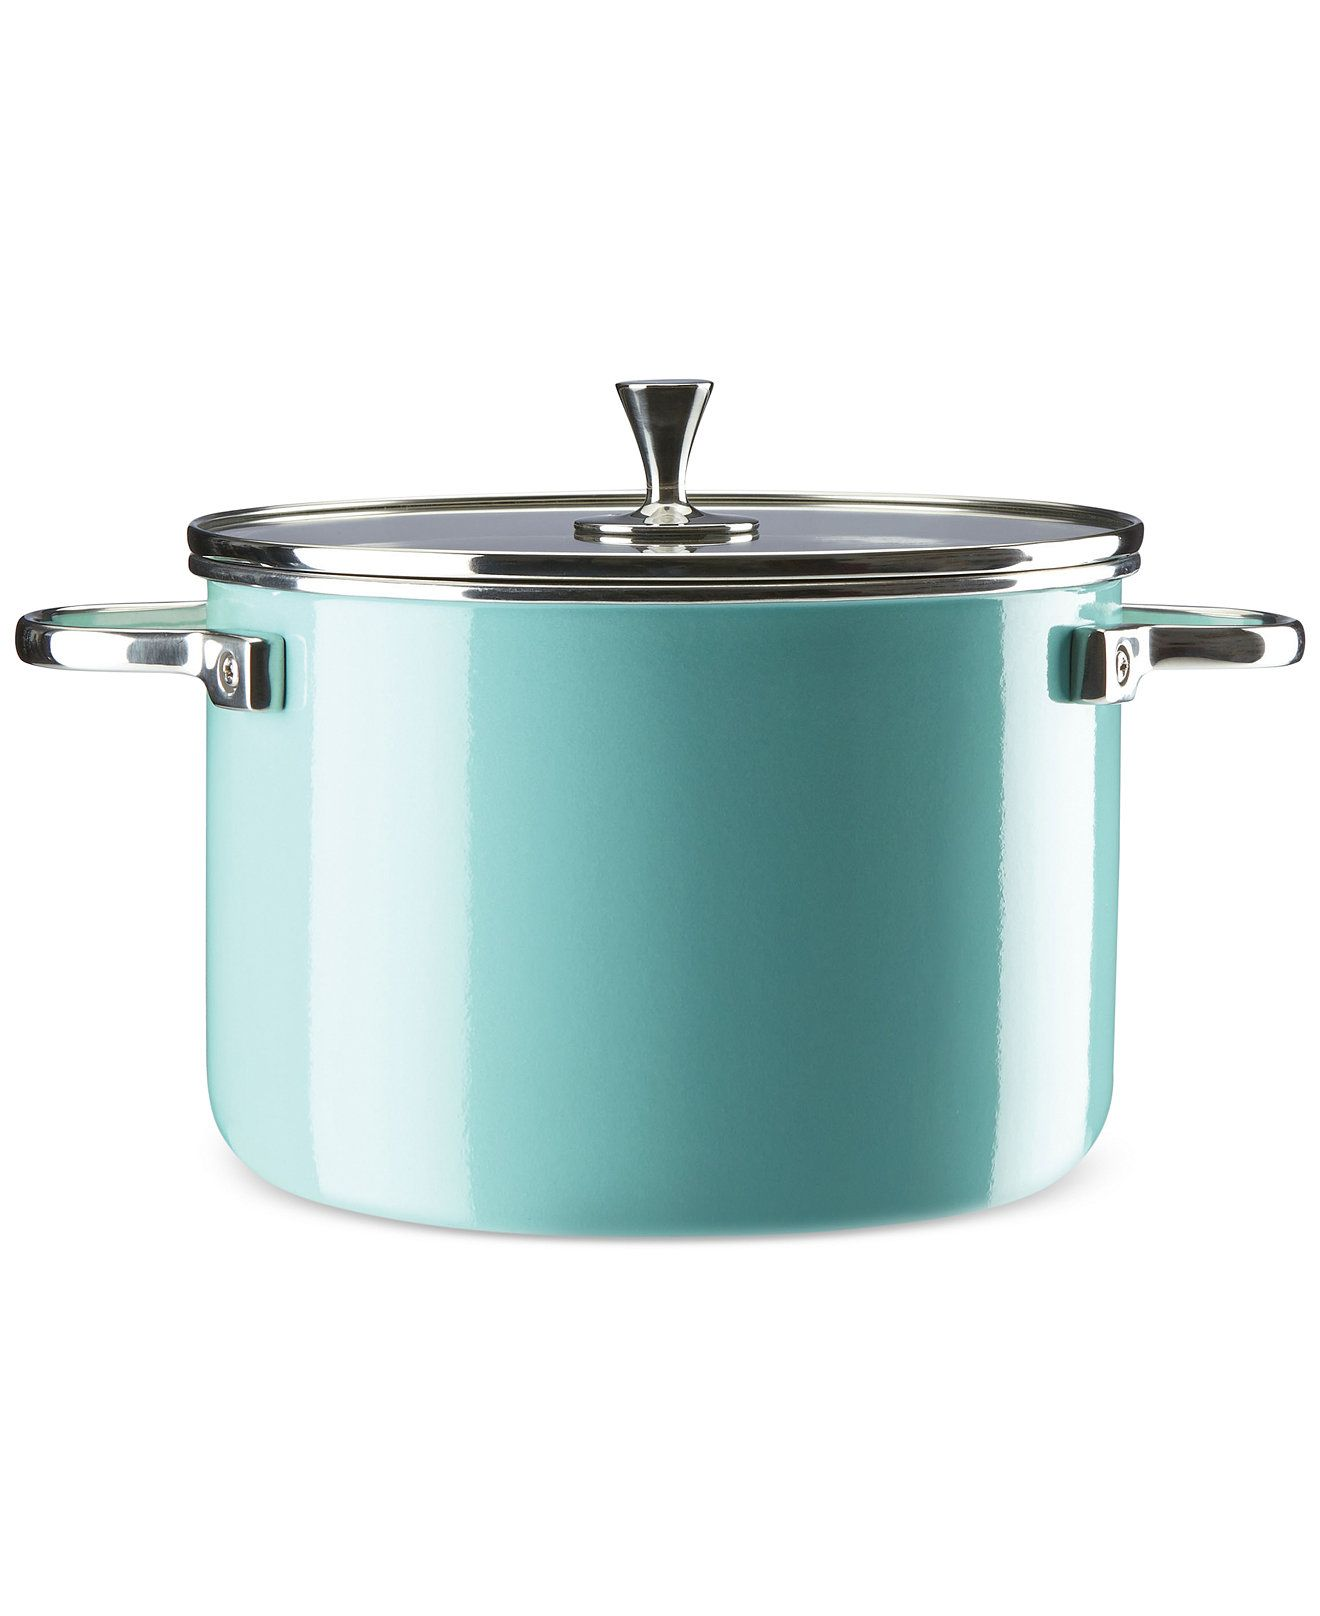 Kate spade wants to take over your kitchen with this charming new